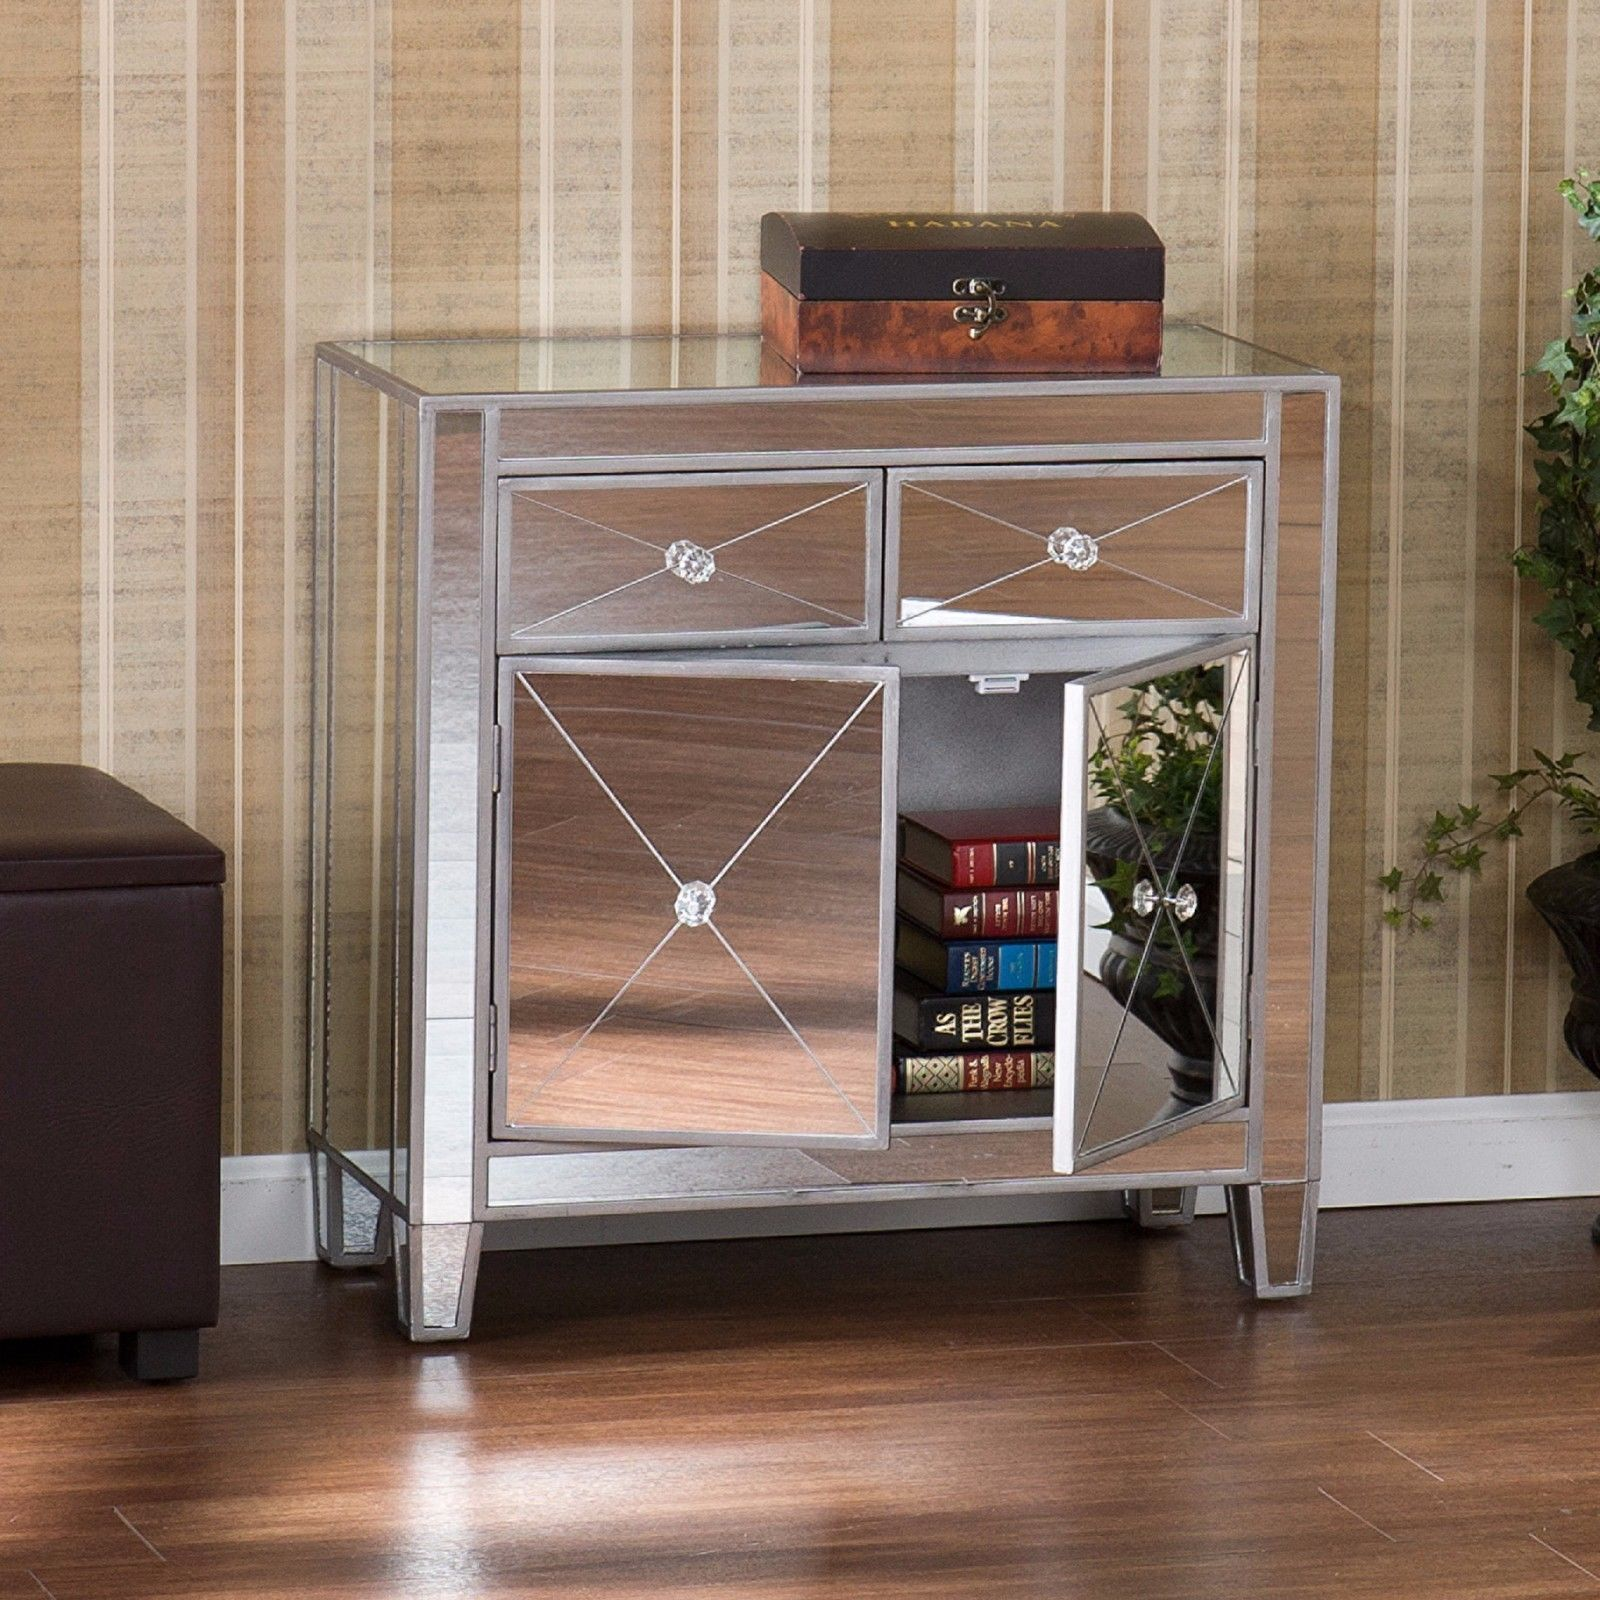 Mirrored Nightstand   Mirrored Storage Cabinet Drawers Dresser Chest Table  Bedroom Nightstand 1 Or 2